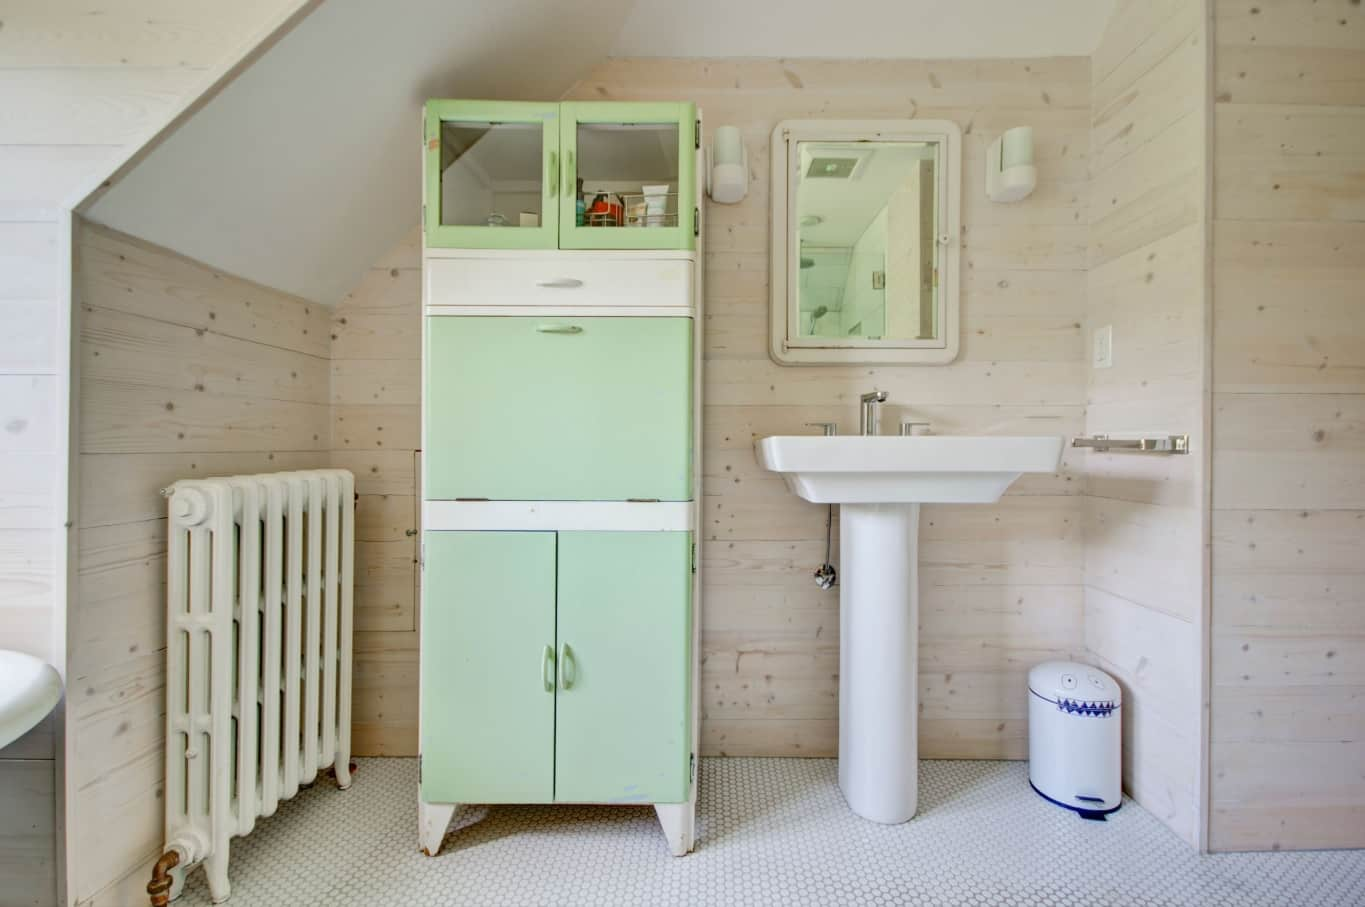 9 Great Bathroom Design Trend for 2020 and Beyond. Mint cabinet and wooden trimming for retro space